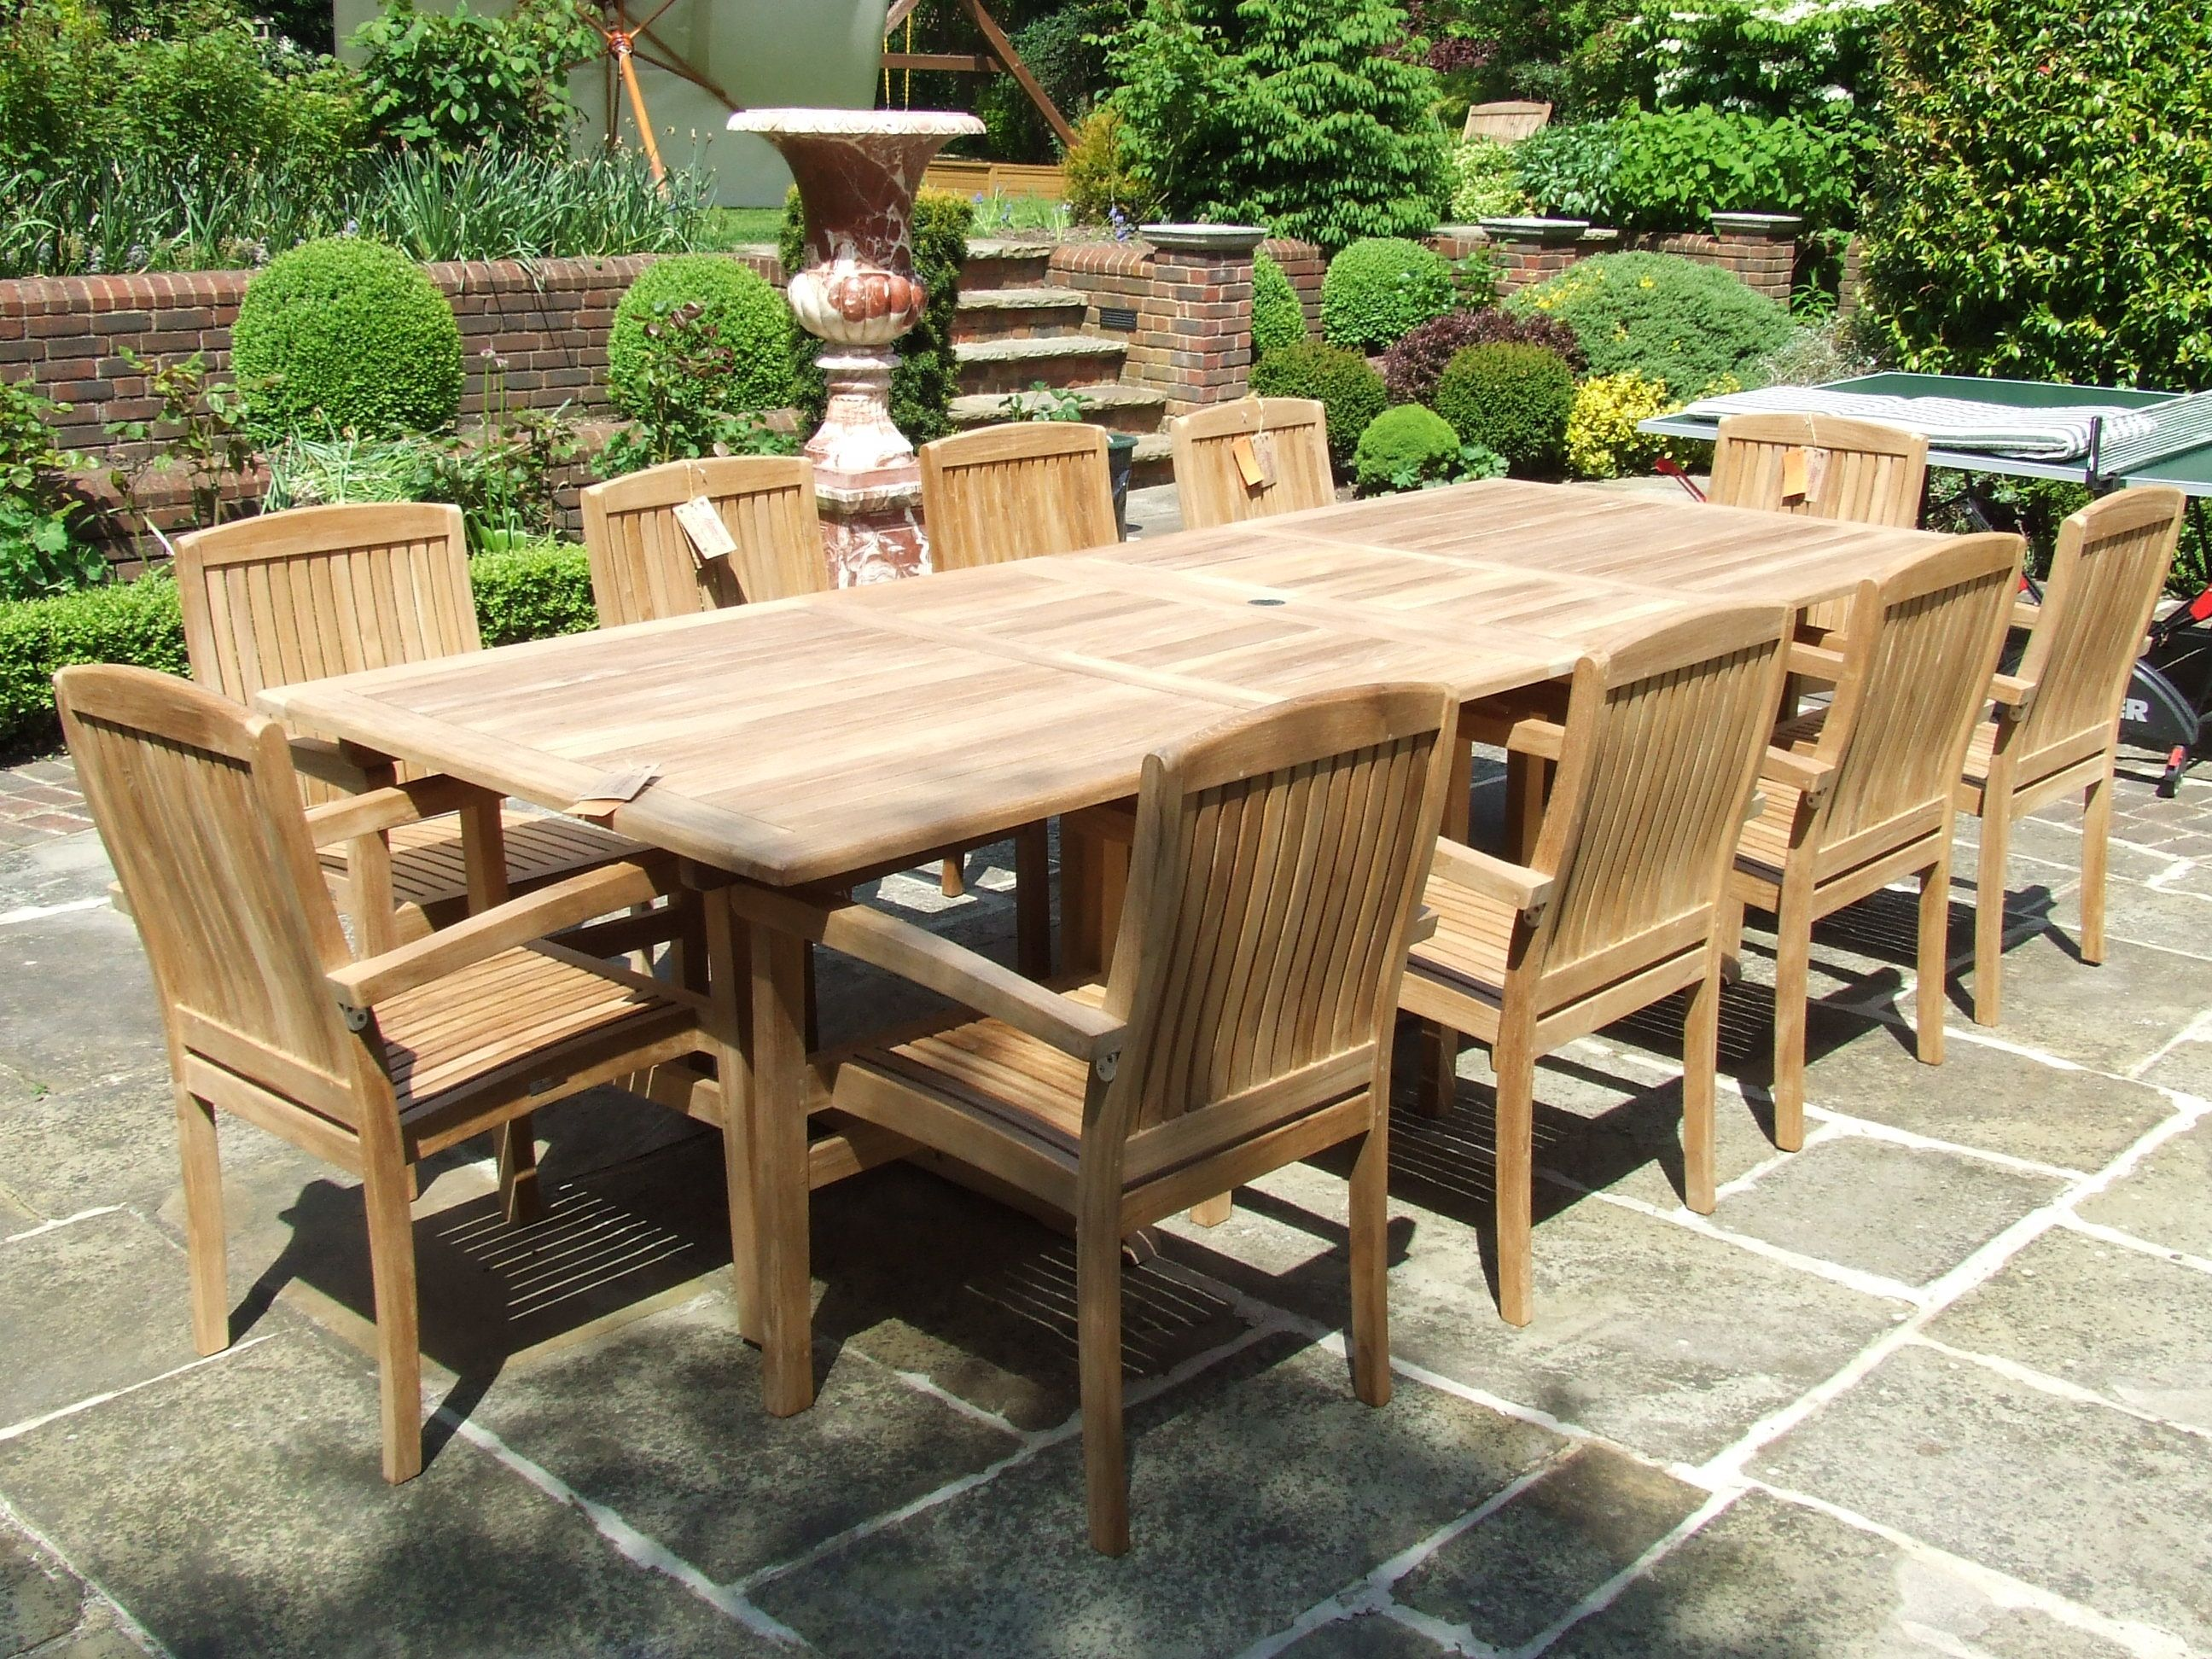 Outdoor Table And Chair Set Sale Patio Dining Sets On Sale Canada